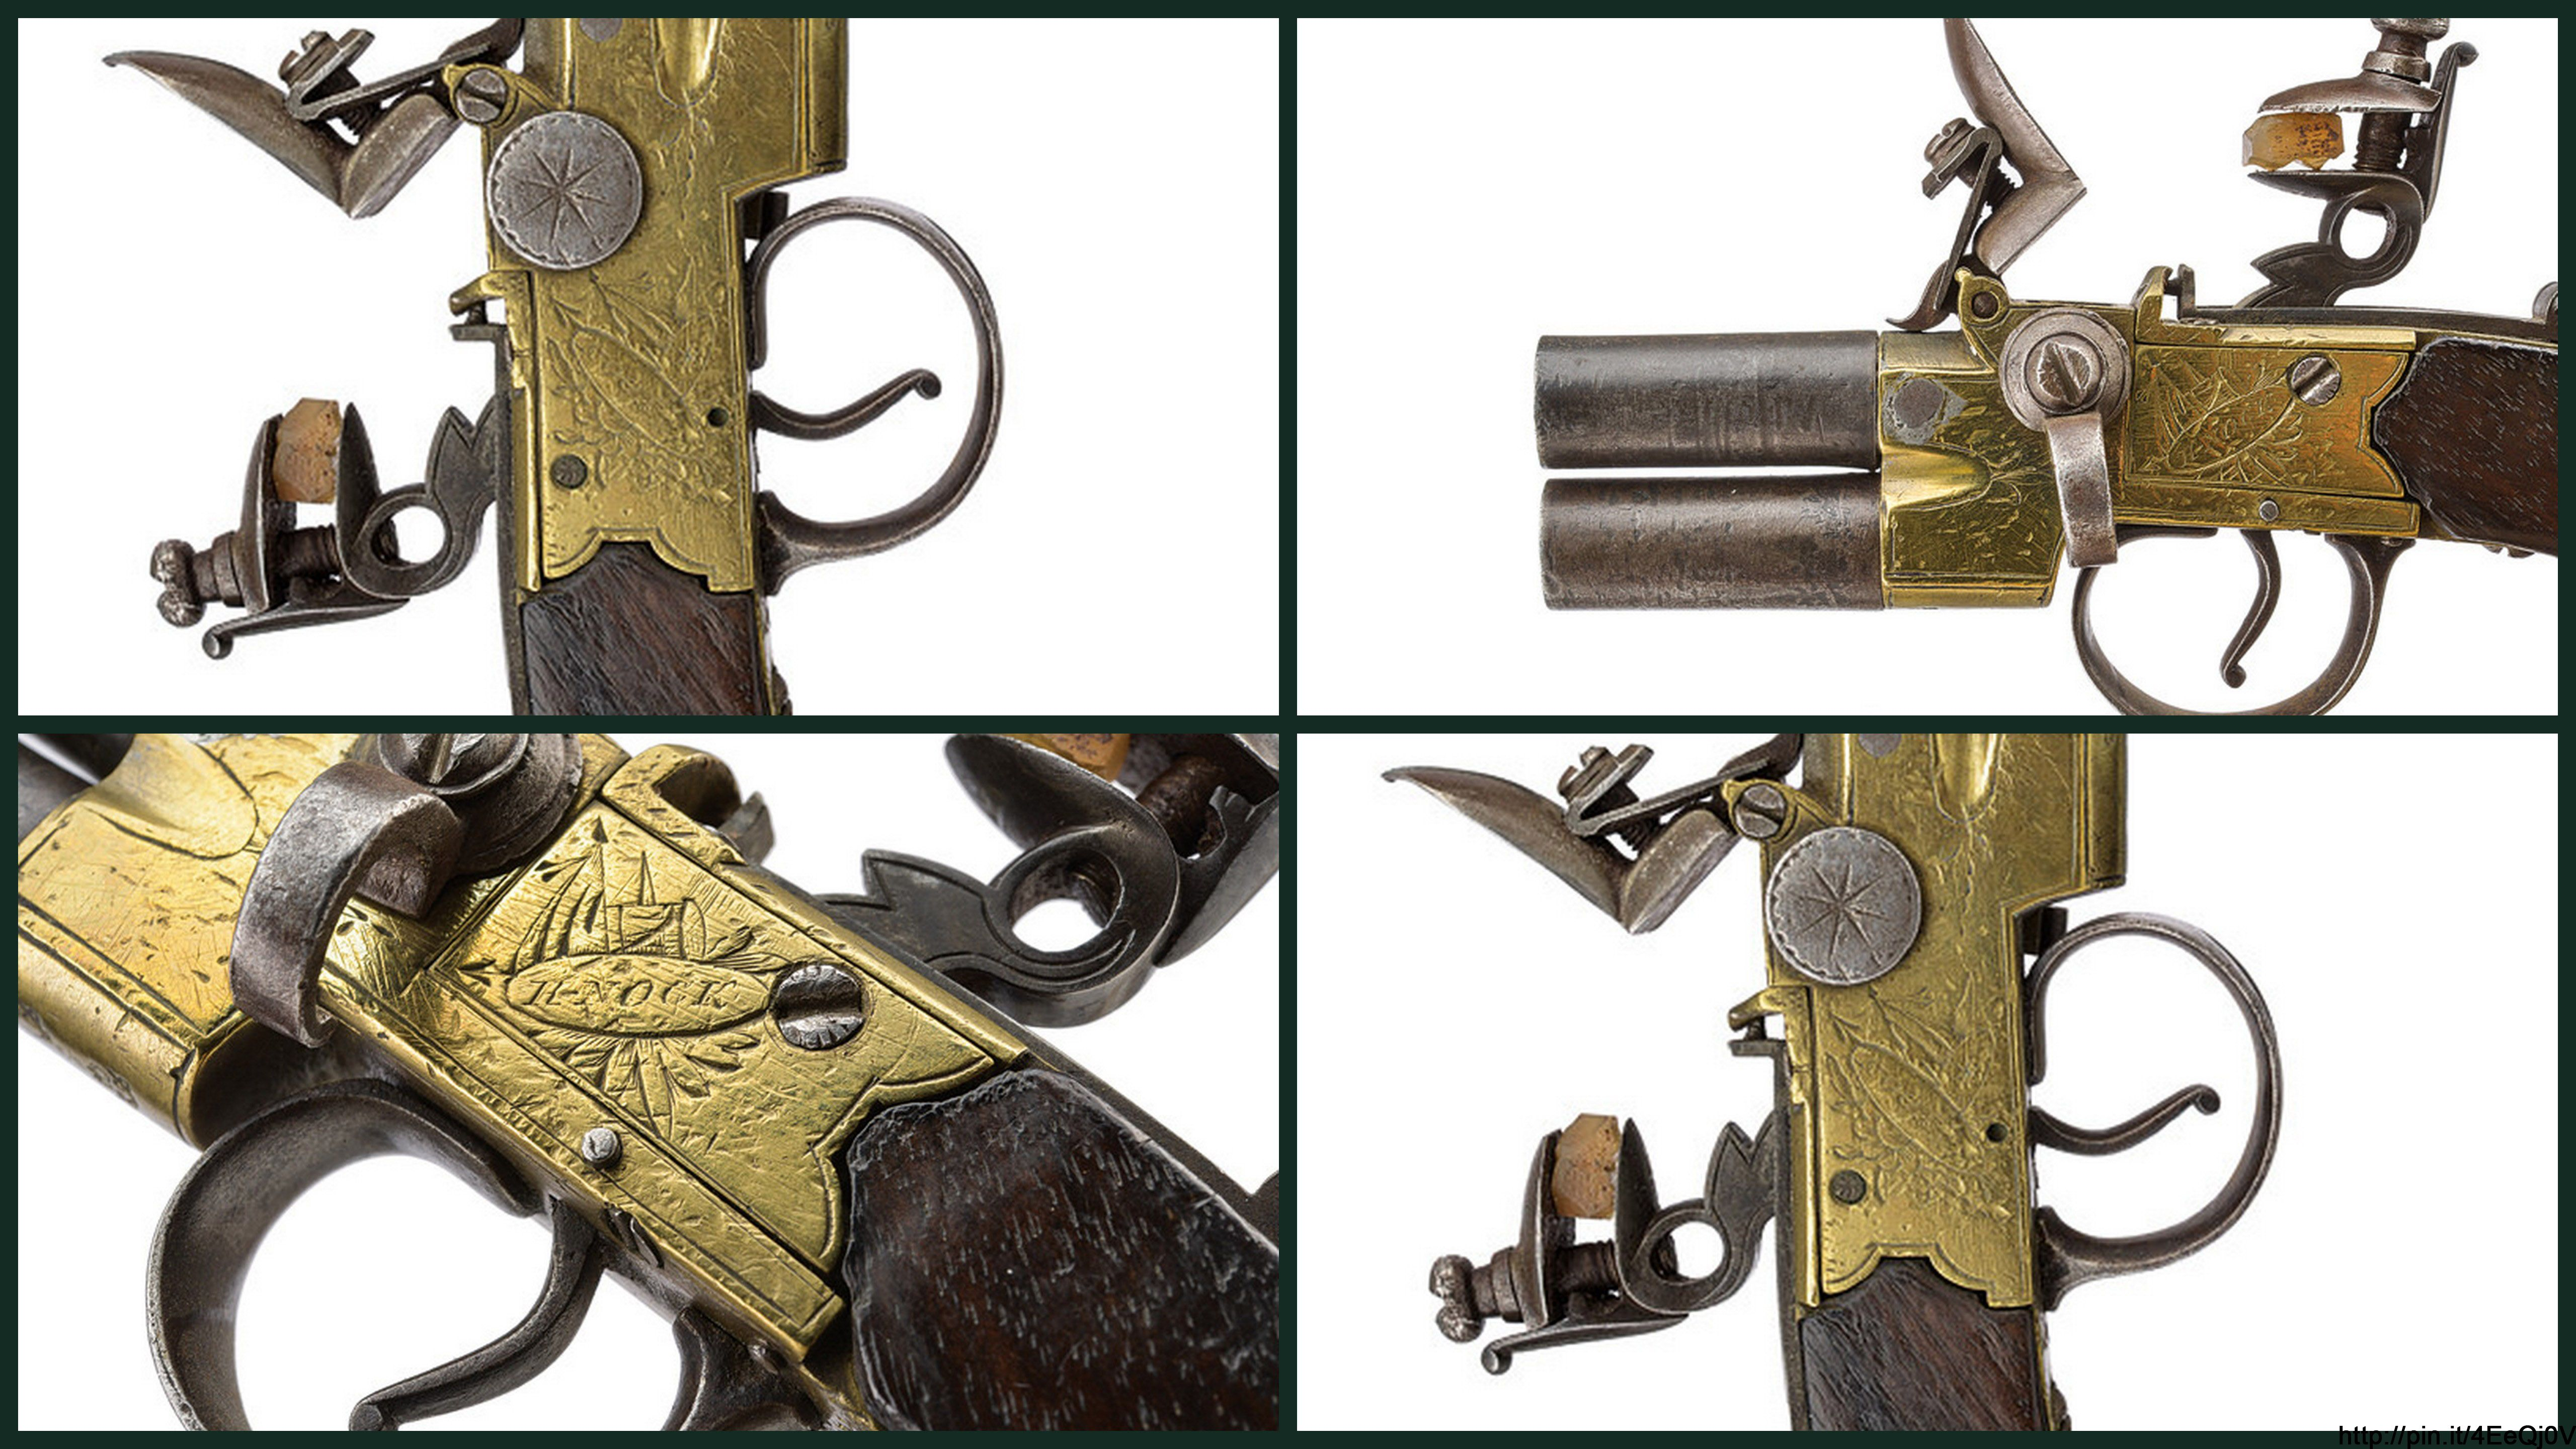 """A over and under barrelled flintlock pocket pistol by Nock   provenance: London dating: first quarter of the 19th Century   description: Round, smooth, 10 mm cal. barrels; brass frame engraved with trophies and signed """"H. NOCK"""" and """"LONDON"""", stamps of the test bench; the parts of the mechanism are made of iron; secure lock. Wooden butt.   dimensions: length15 cm."""